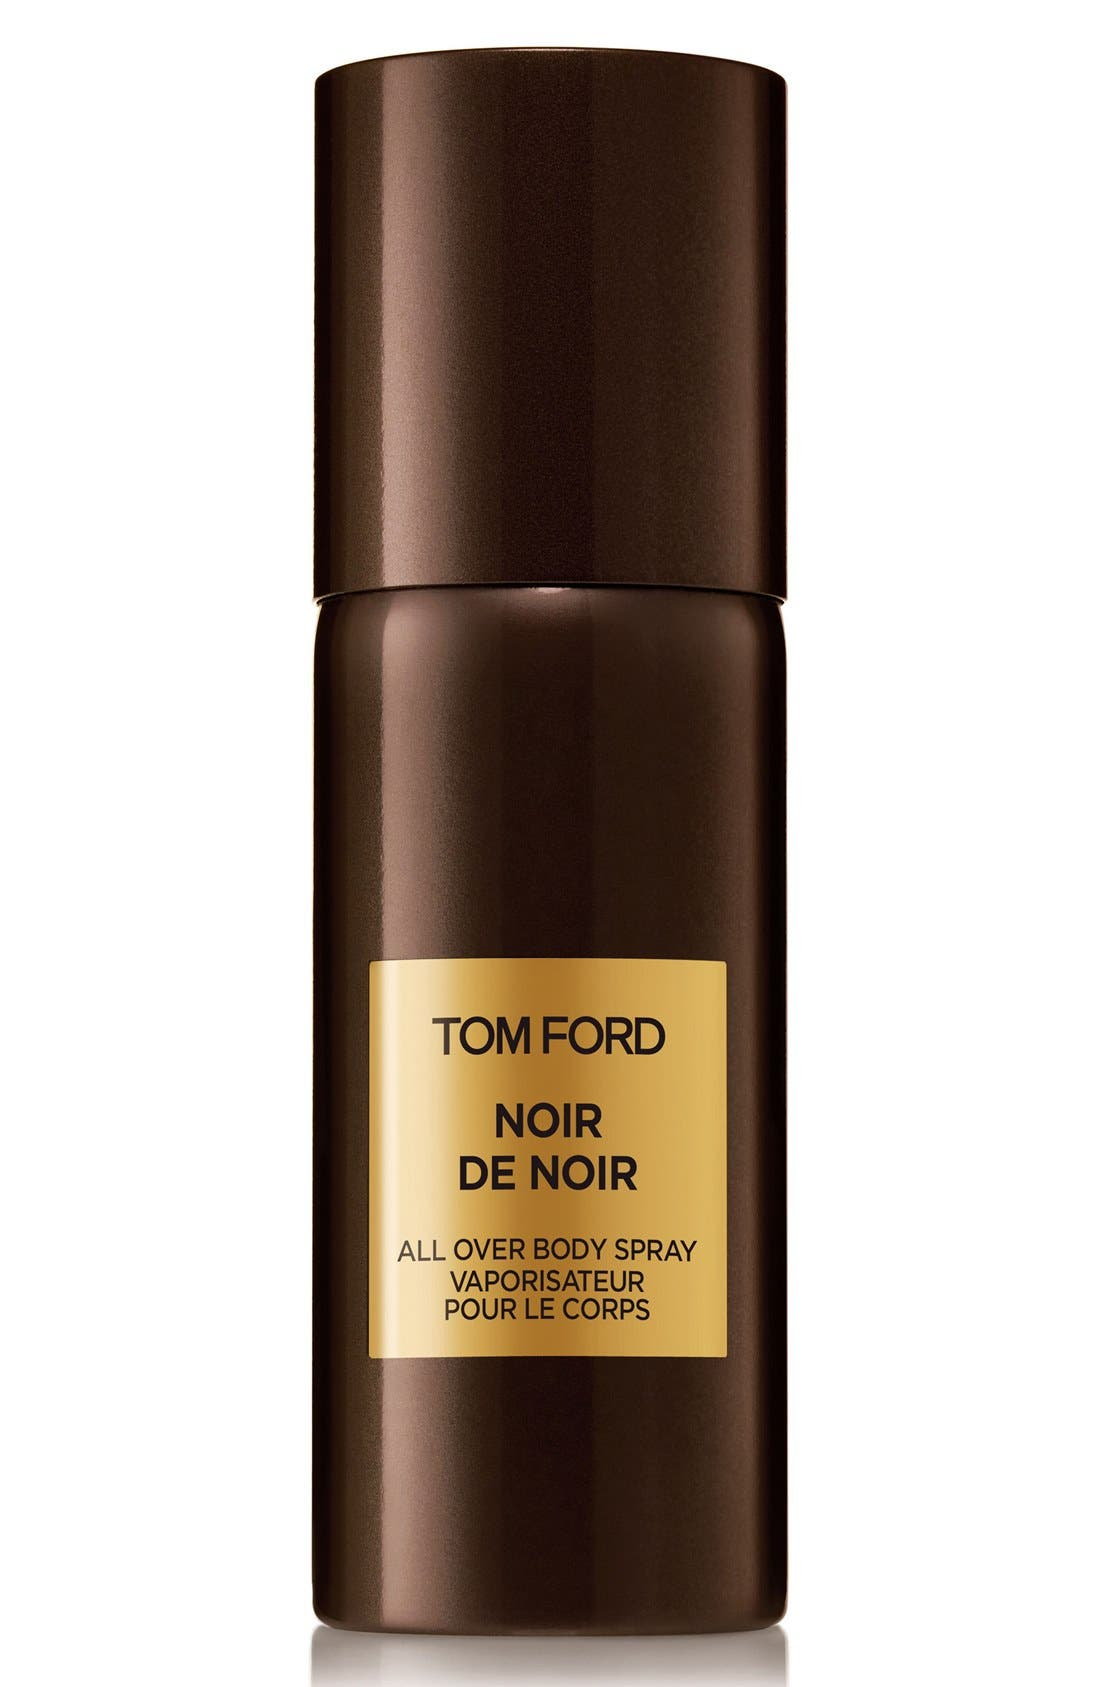 Tom Ford 'Noir de Noir' All Over Body Spray